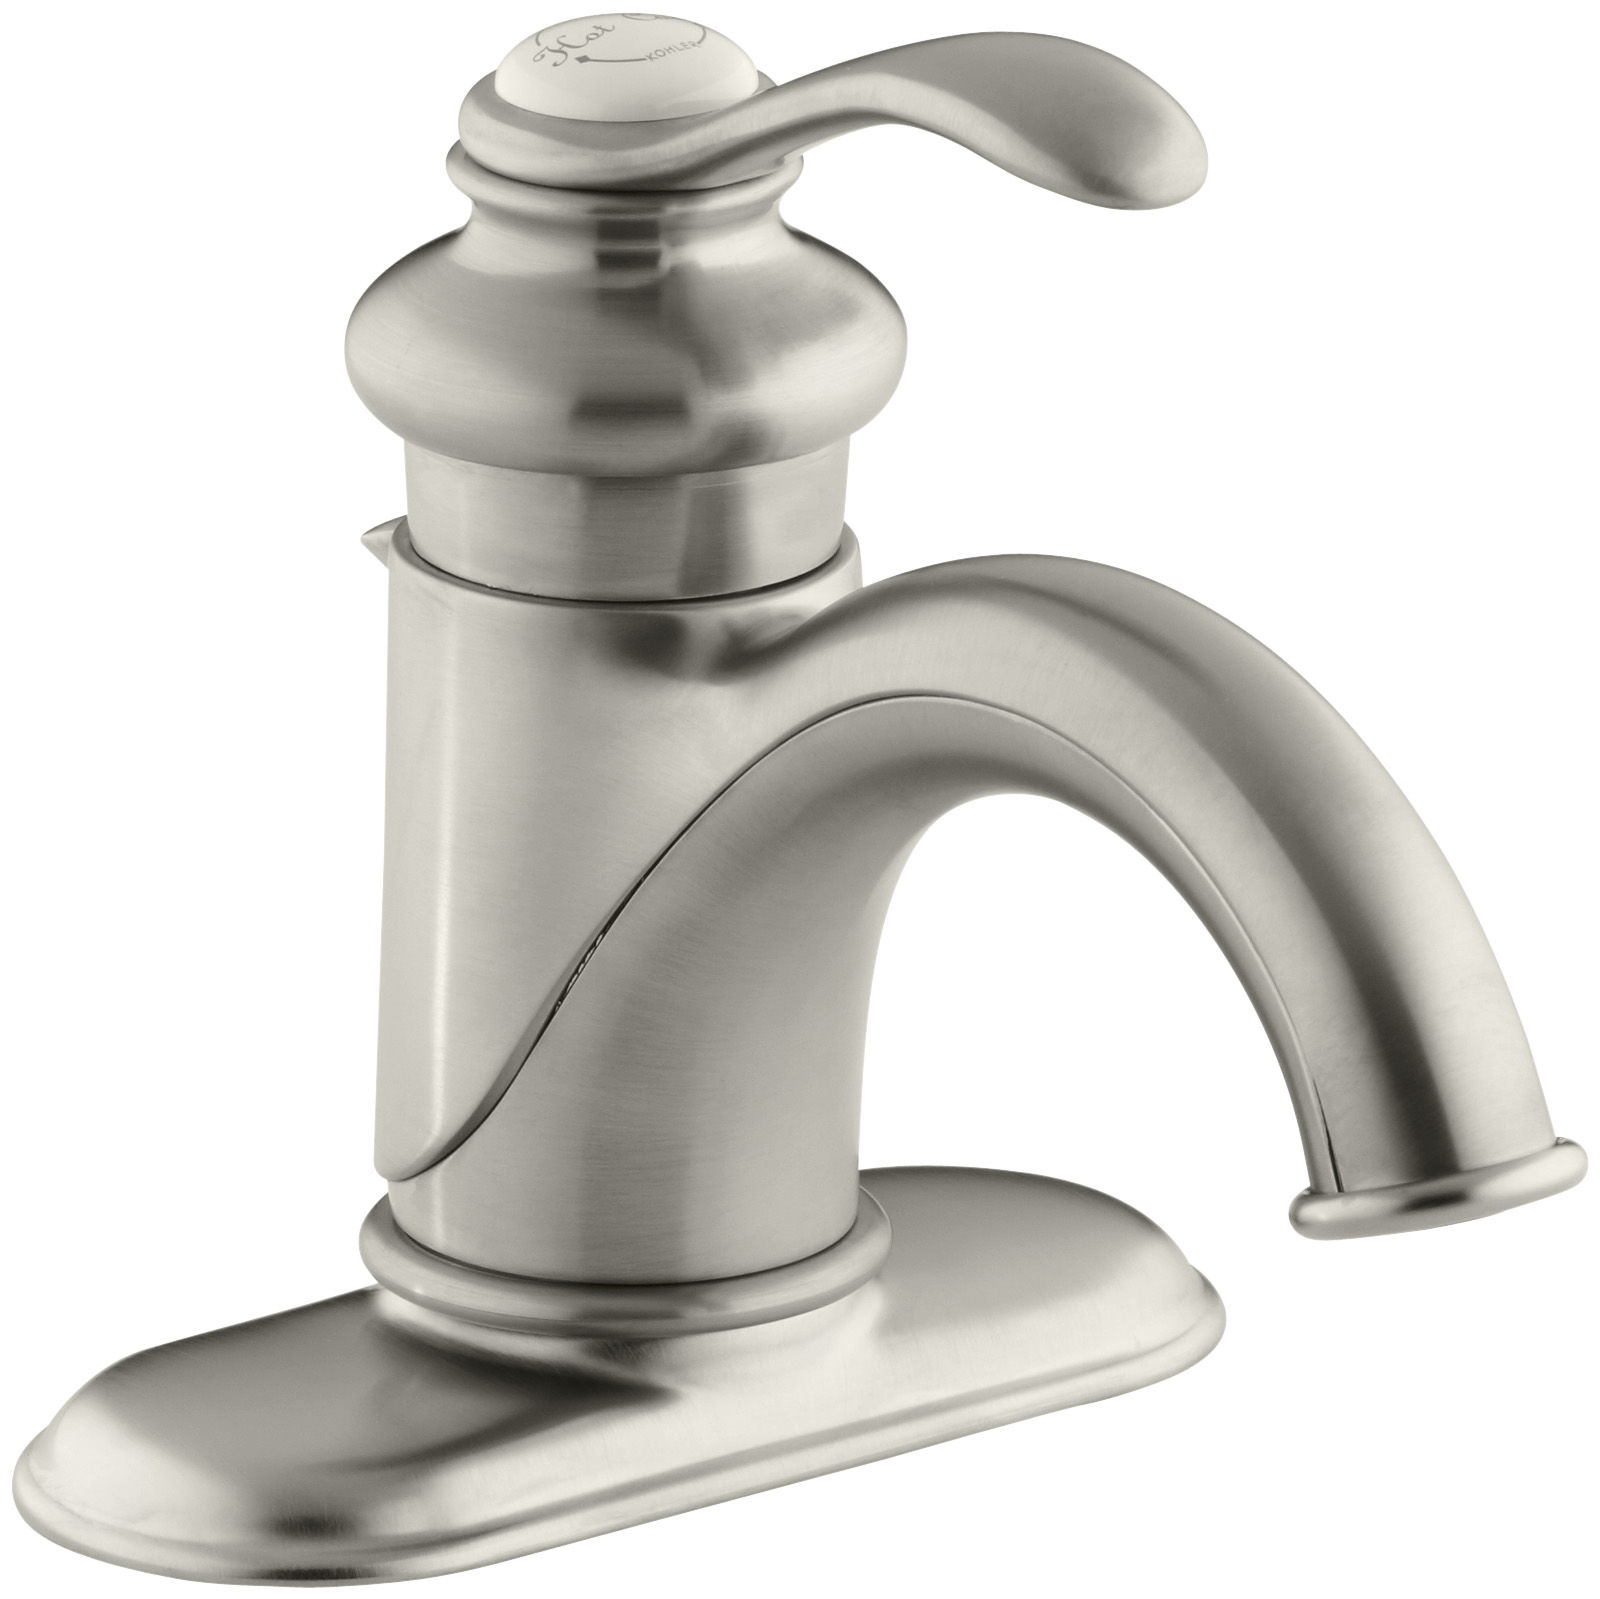 Kohler K 12181 Bv Brushed Bronze Fairfax Single Hole Bathroom Faucet